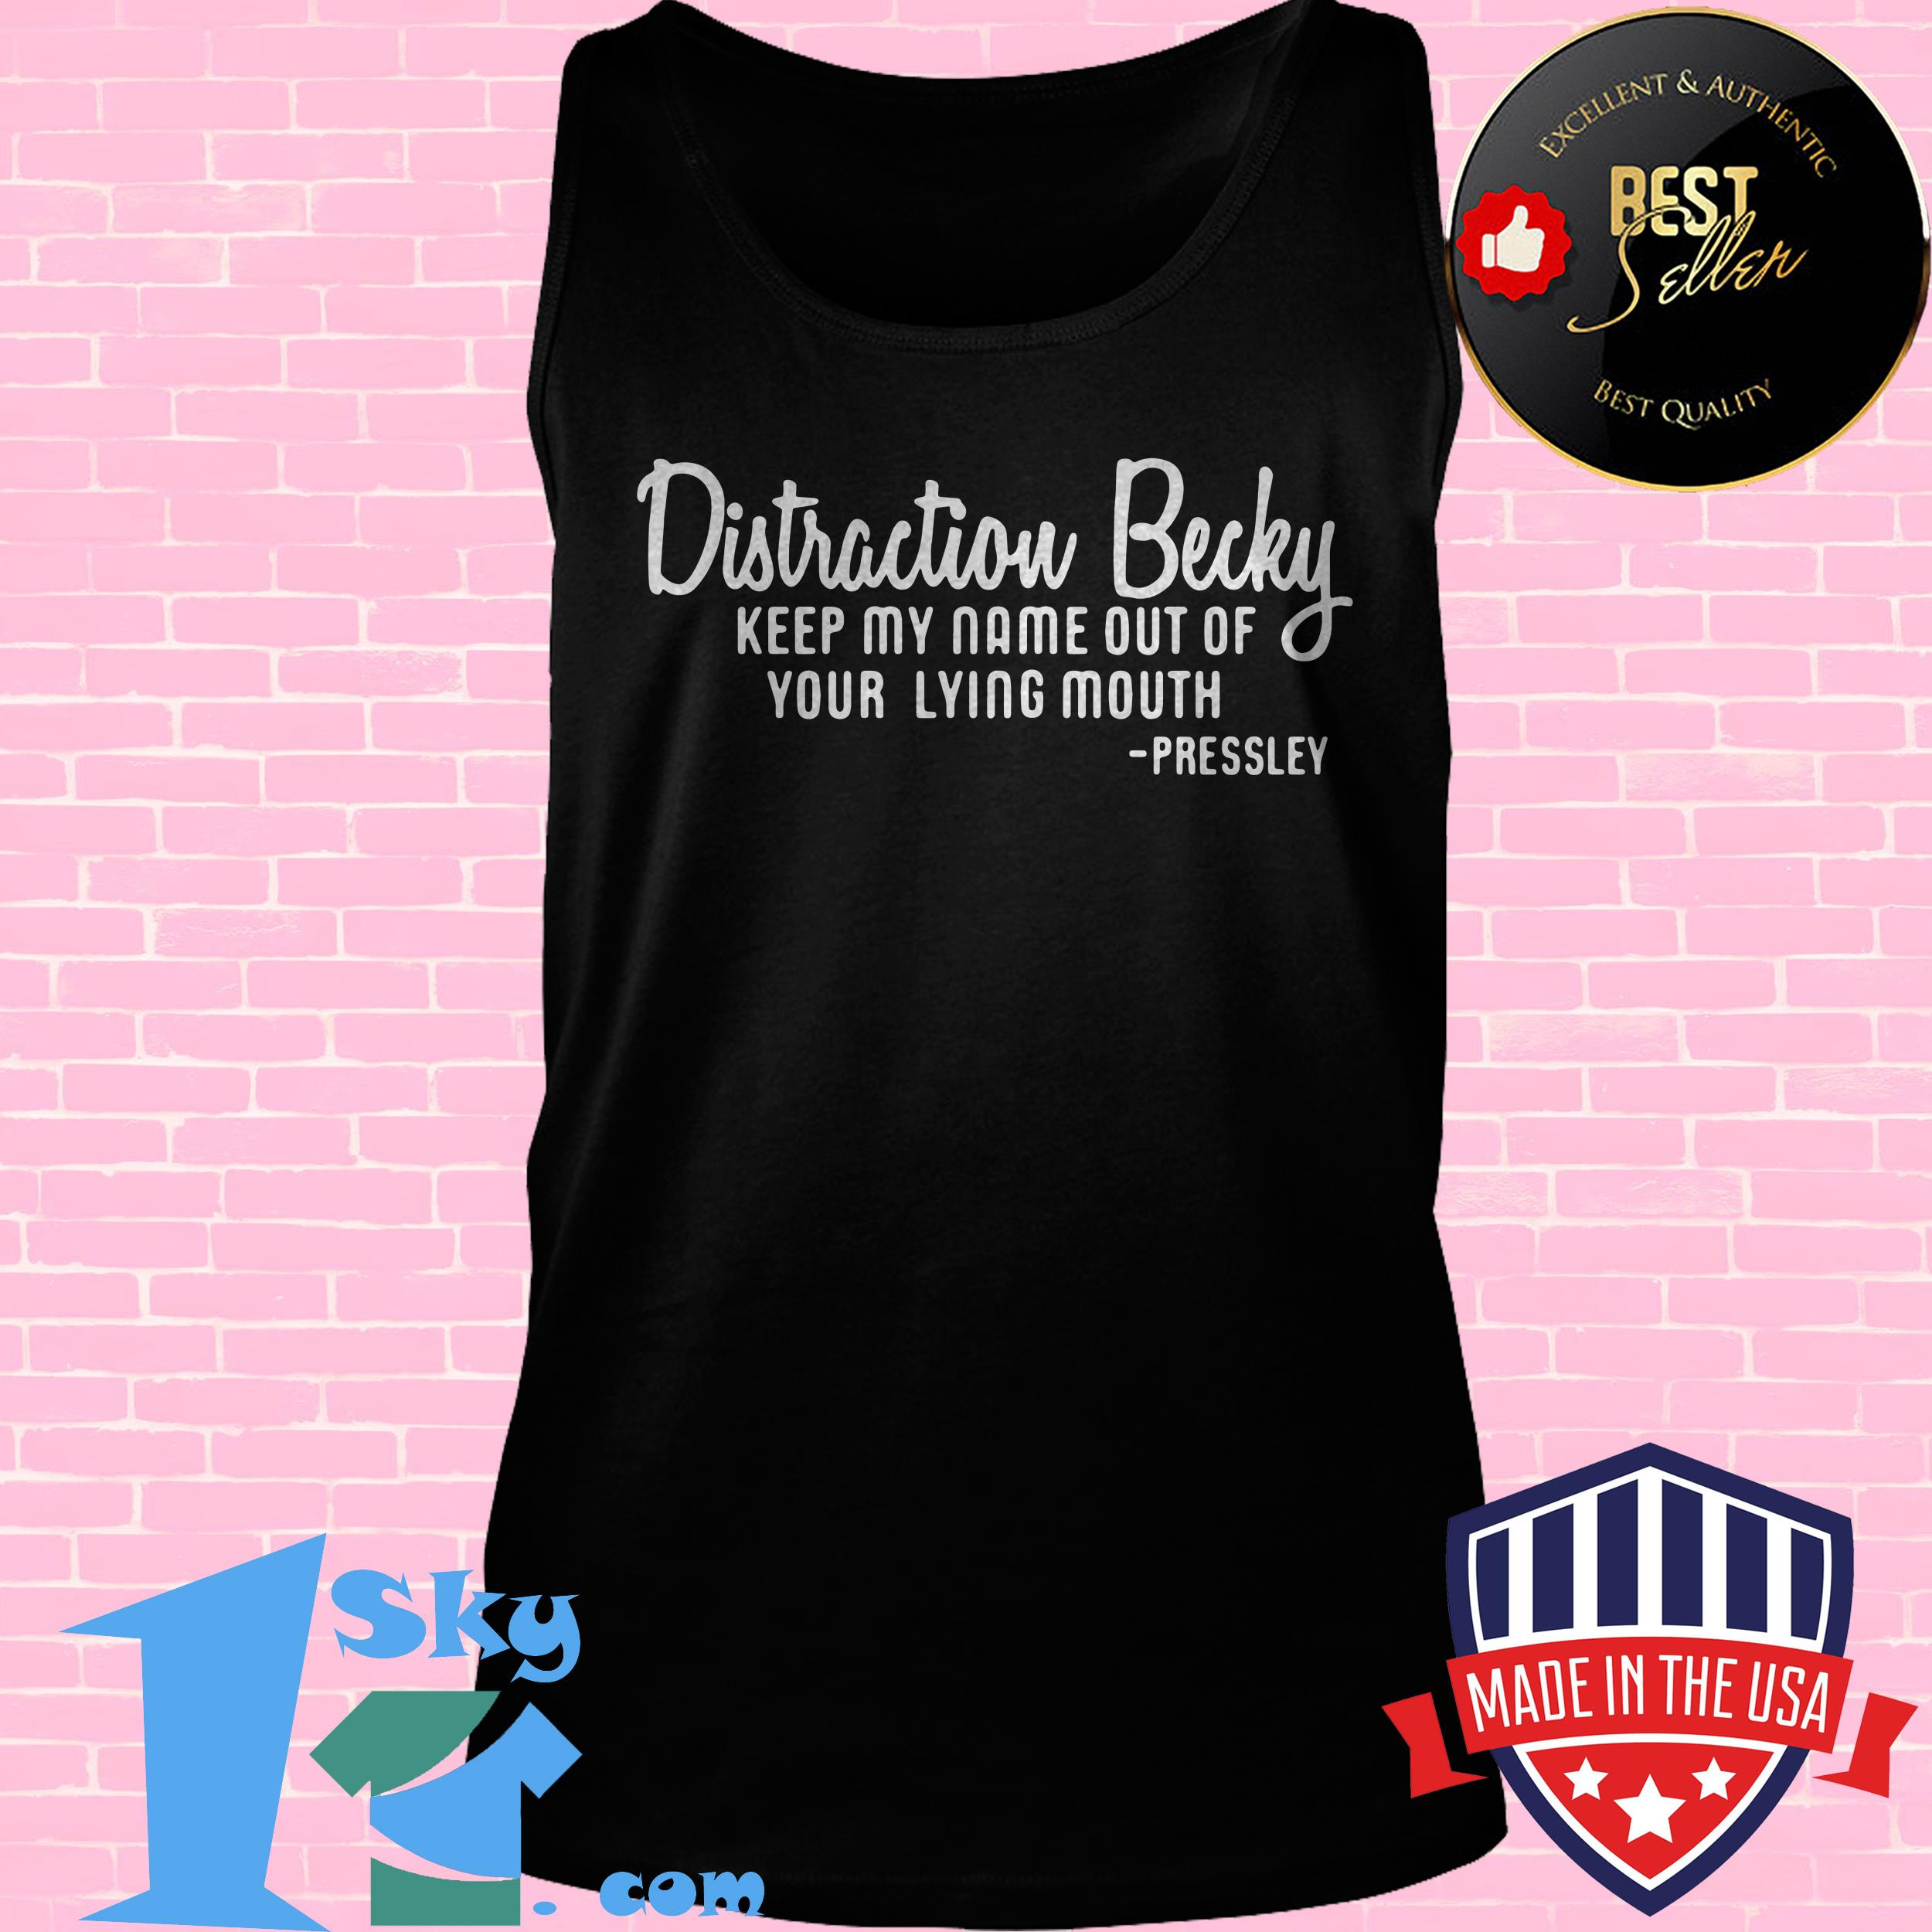 distraction becky keep my name out of your lying mouth pressley tank top - Distraction Becky Keep My Name Out Of Your Lying Mouth Pressley shirt